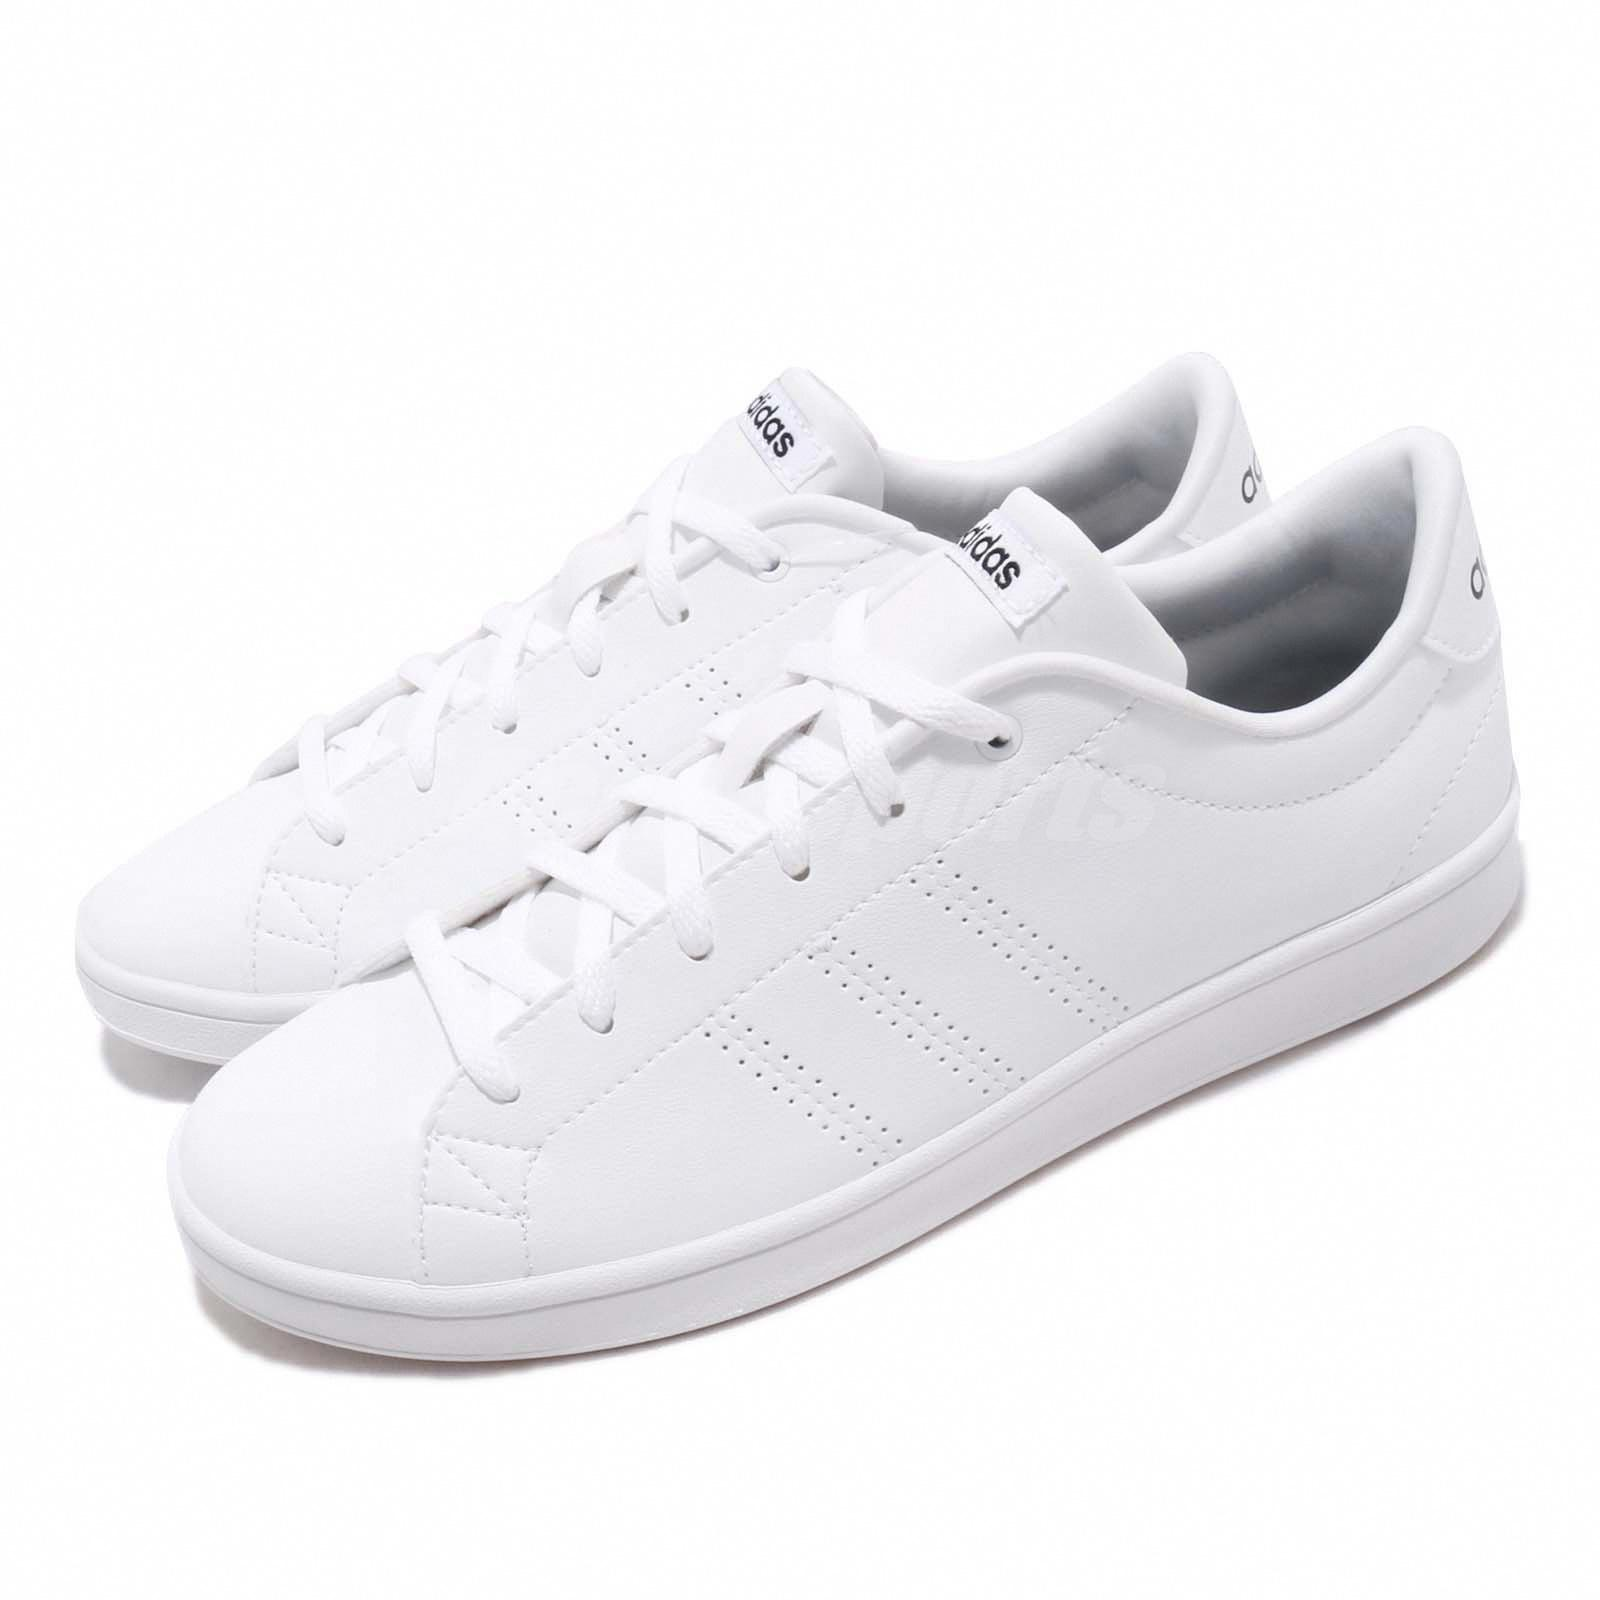 Details about adidas Neo Advantage Clean QT White Black Women Casual Shoes Sneakers B44667